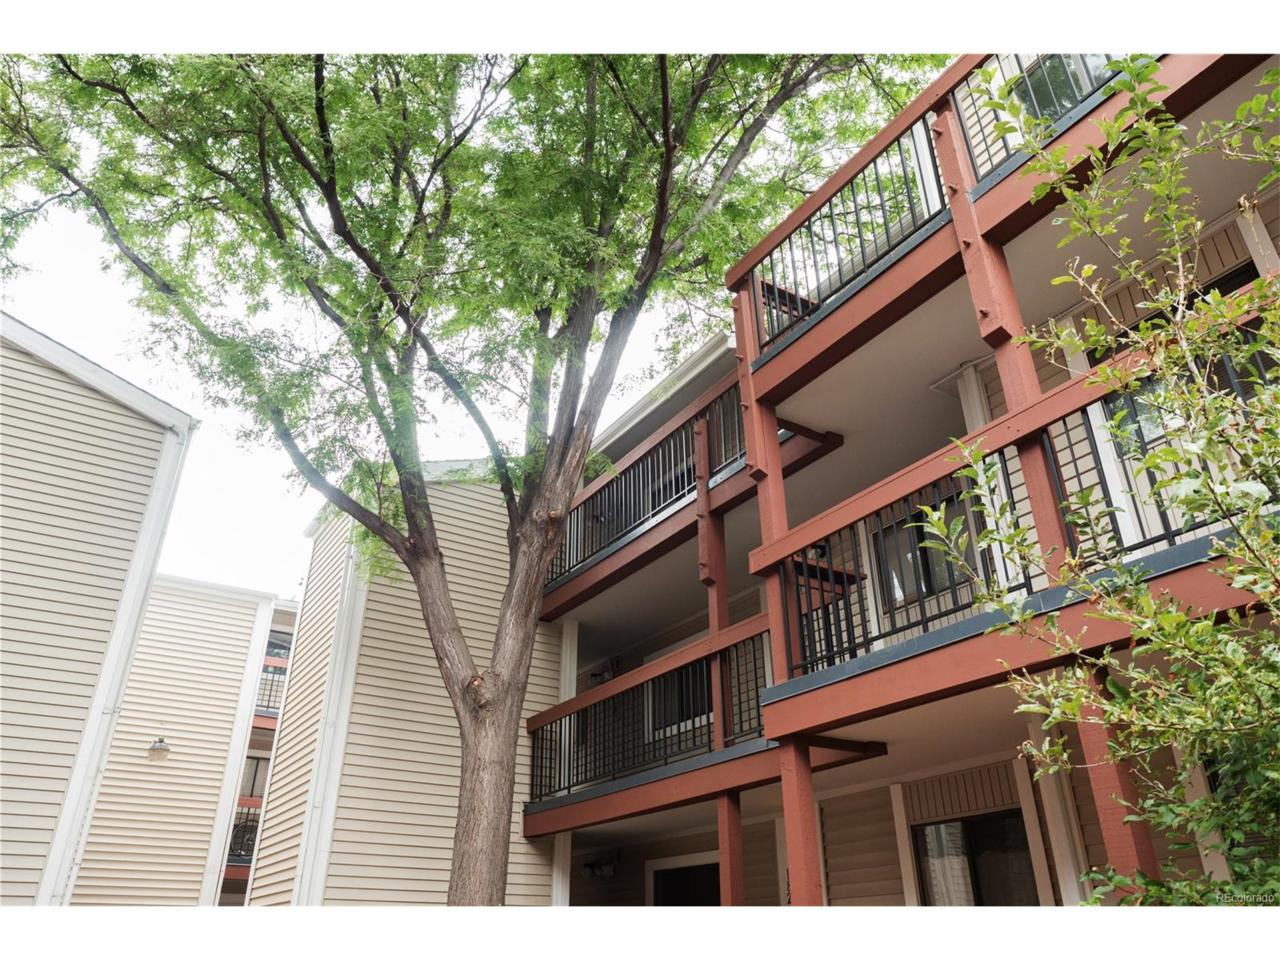 2740 W 86th Avenue #182, Westminster, CO 80031 (MLS #7602877) :: 8z Real Estate